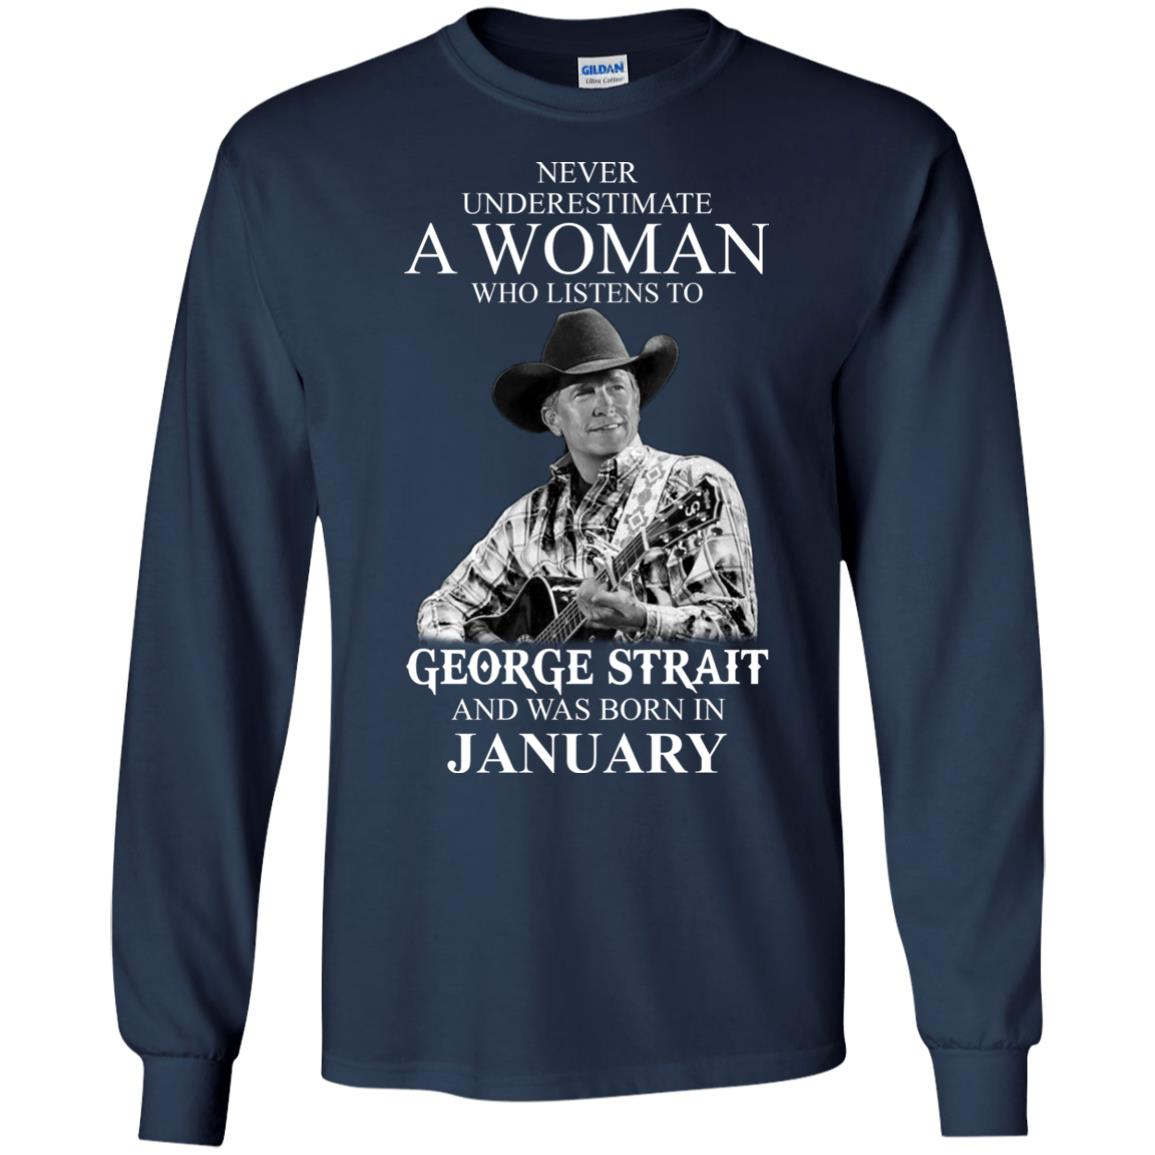 image 461 - Never Underestimate A Woman Who Listens To George Strait And Was Born In January shirt